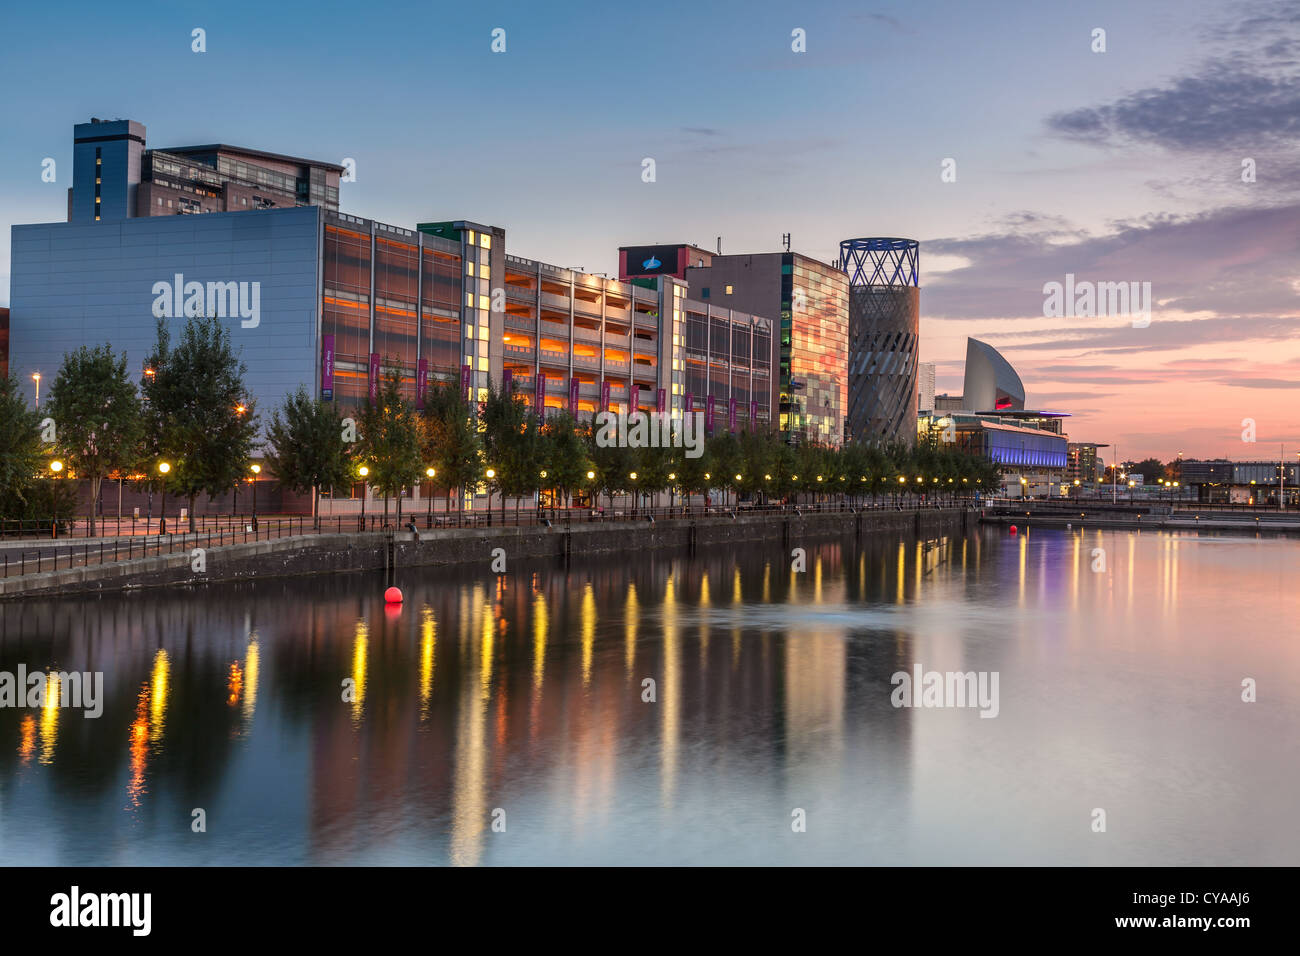 Salford Quays Shopping Mall - Stock Image